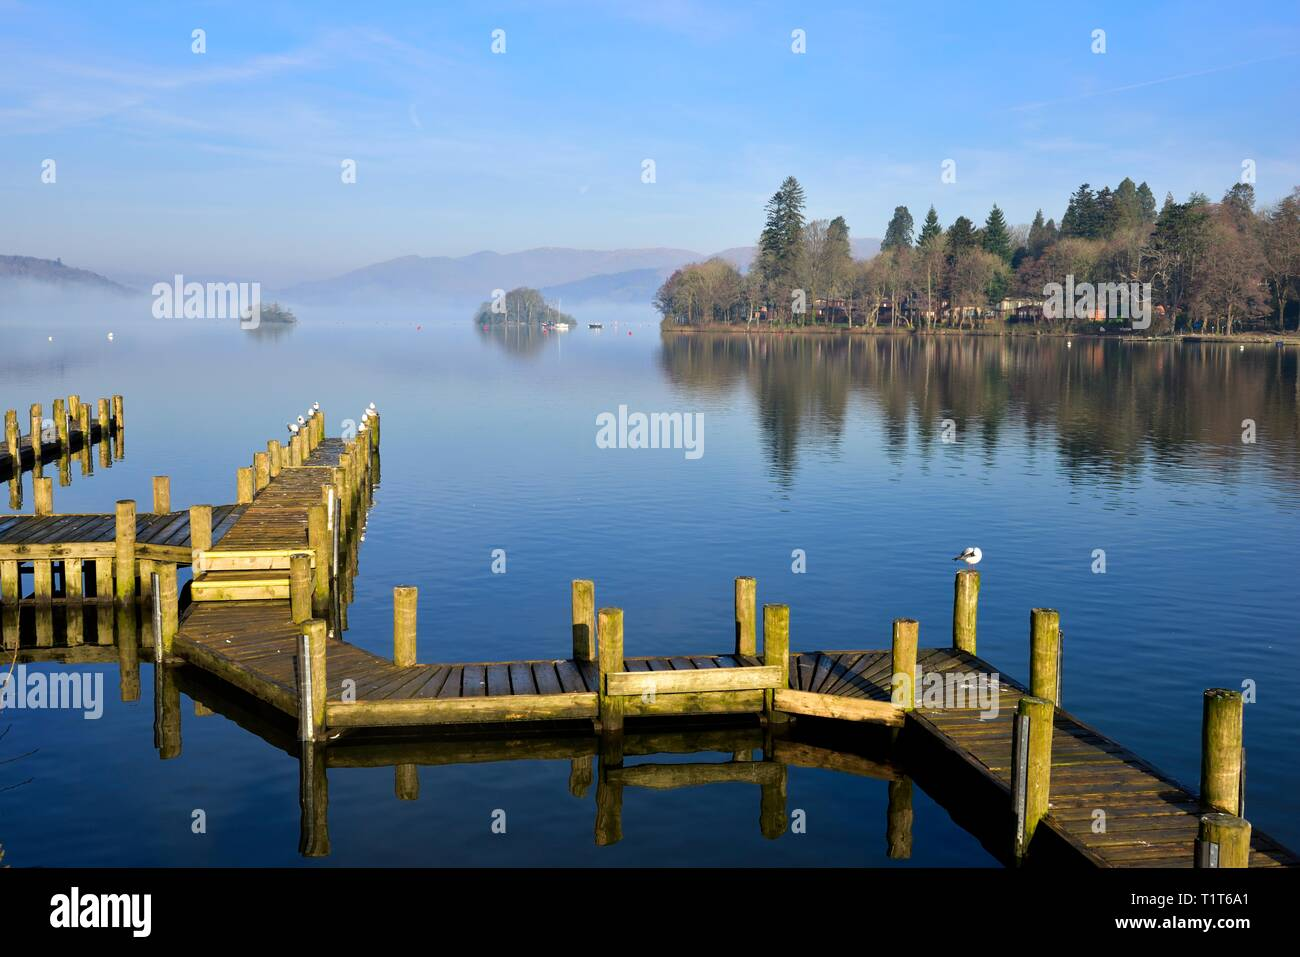 Bowness on Windermere,Lake District,Cumbria,England,UK Stock Photo